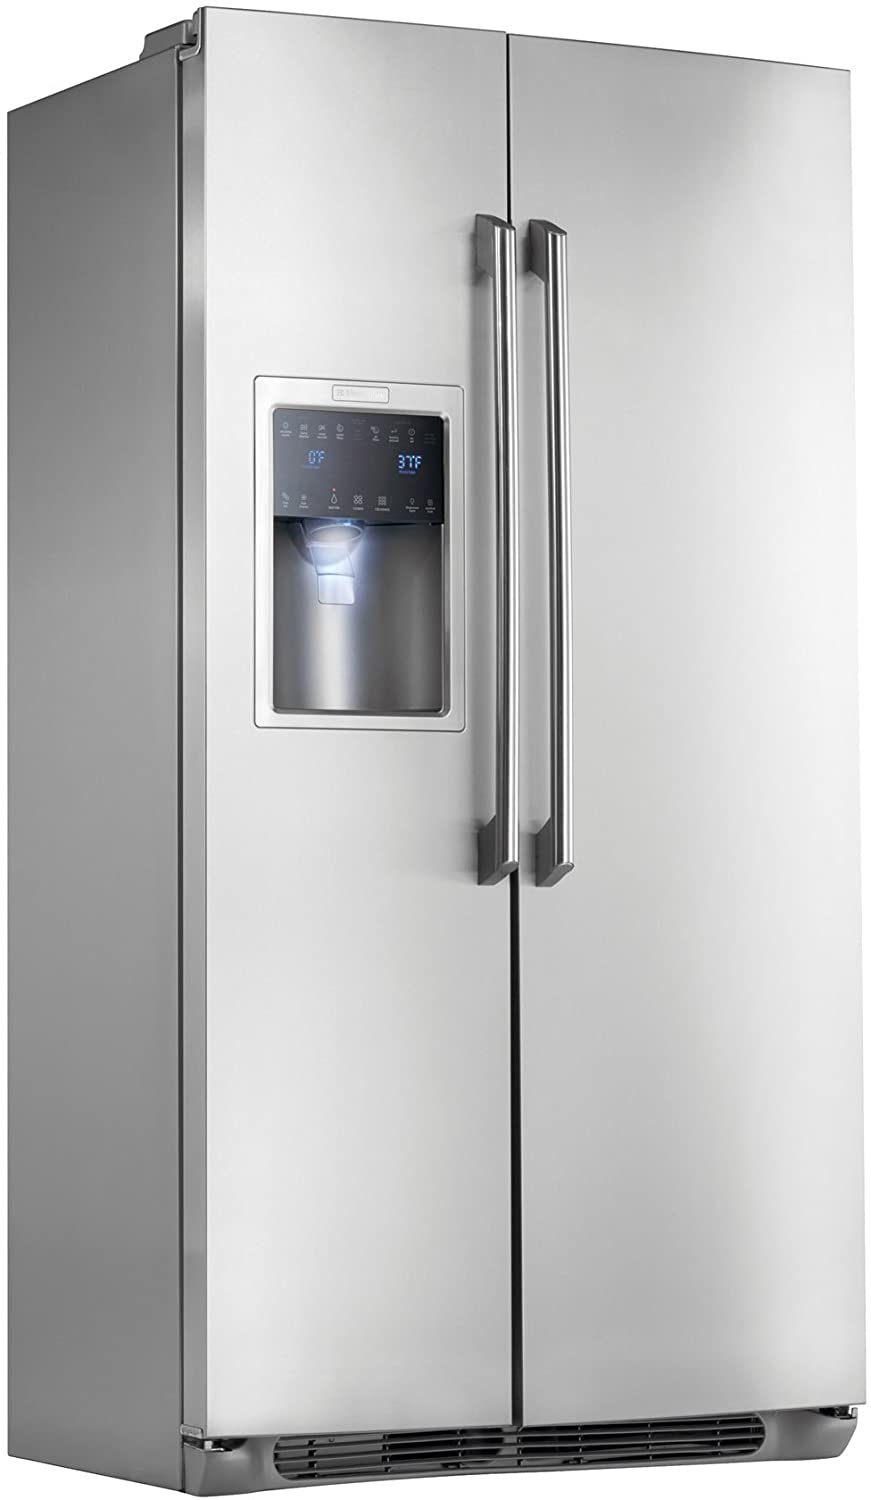 refrigerator electrolux. amazon.com: electrolux ei23cs35ks iq-touch 22.6 cu. ft. stainless steel counter depth side-by-side refrigerator - energy star: appliances